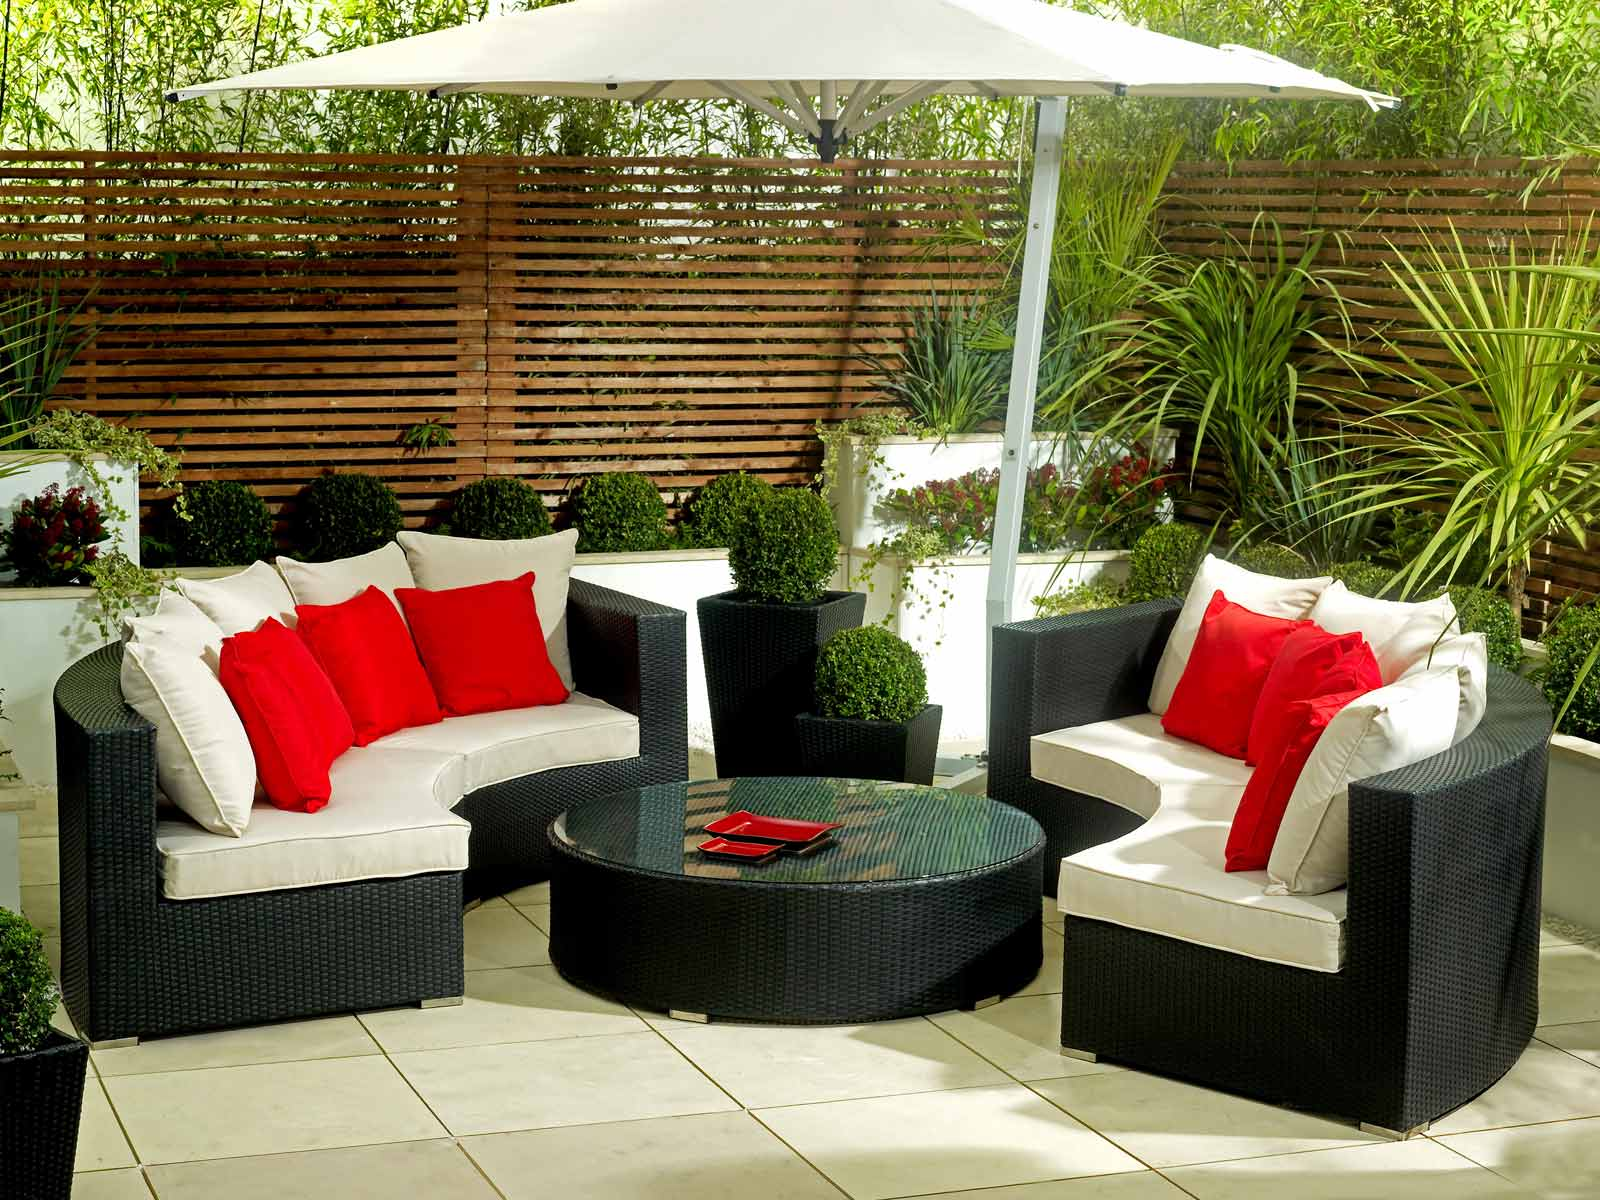 Backyard Furniture Store : garden furniture  garden furniture and accessories